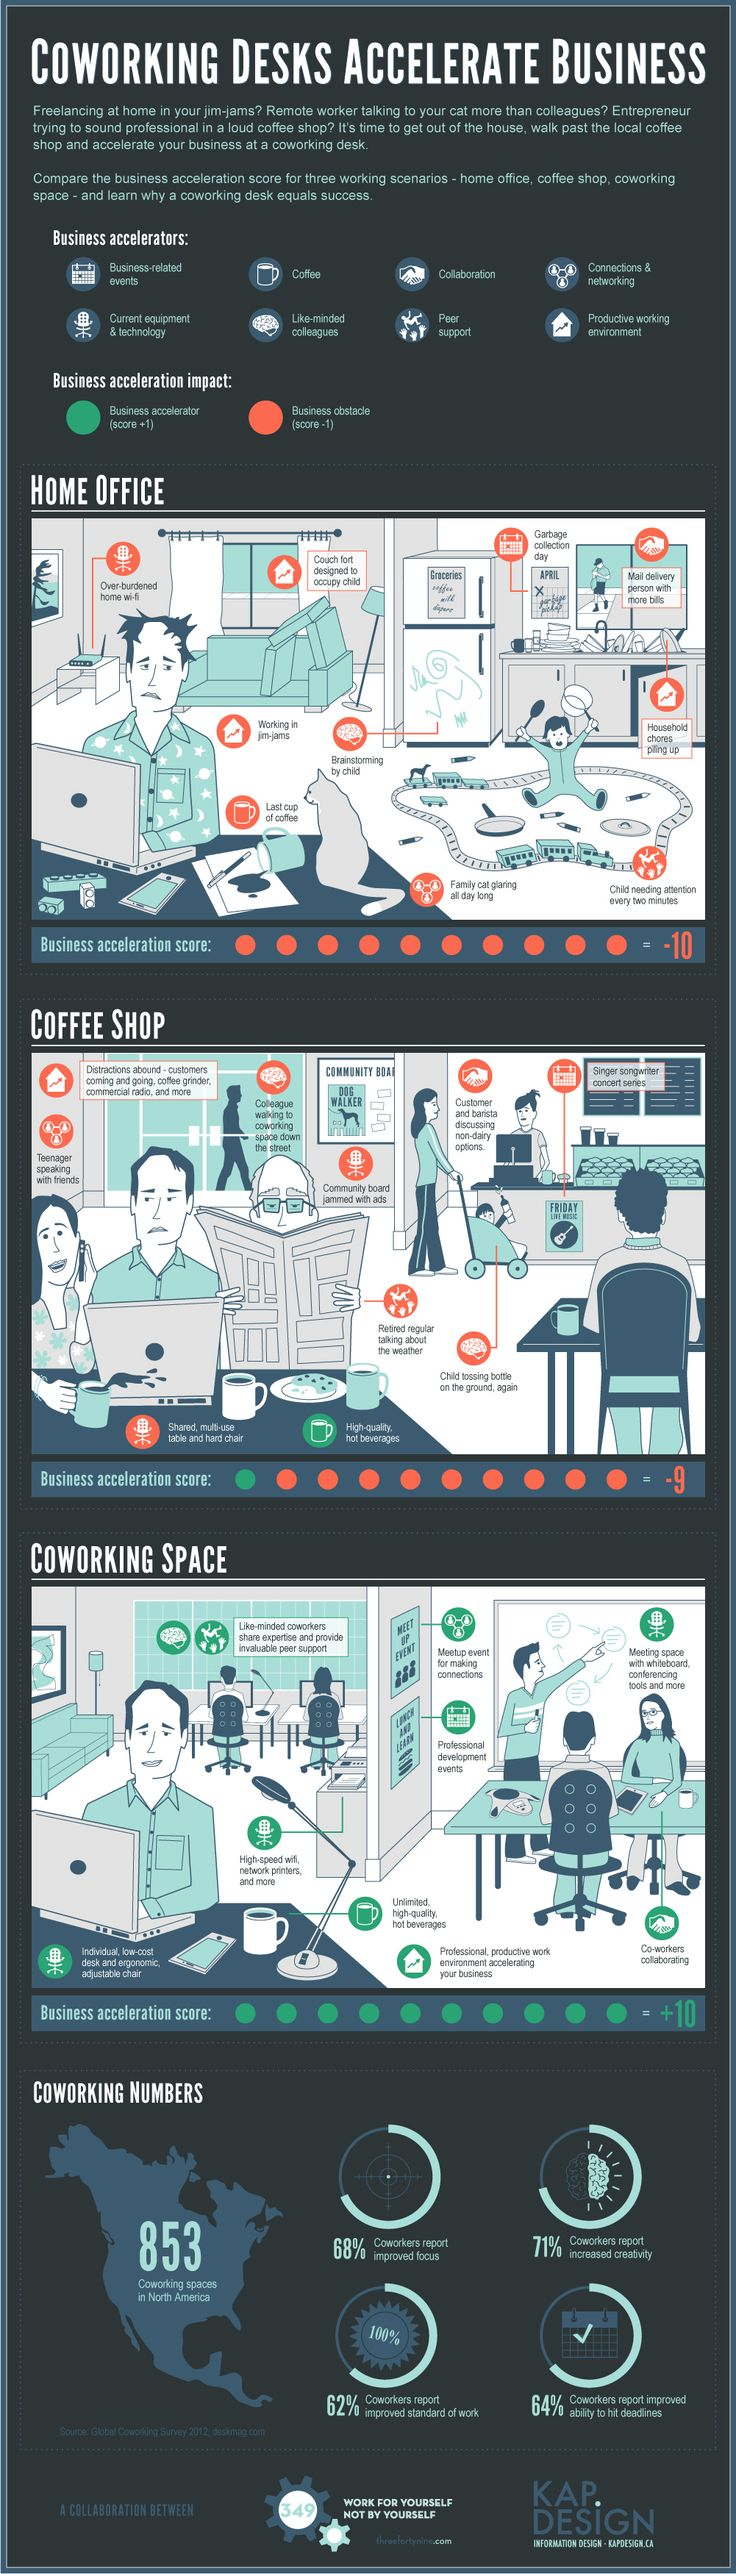 Coworking Desks Accelerate Business @ Pinfographics